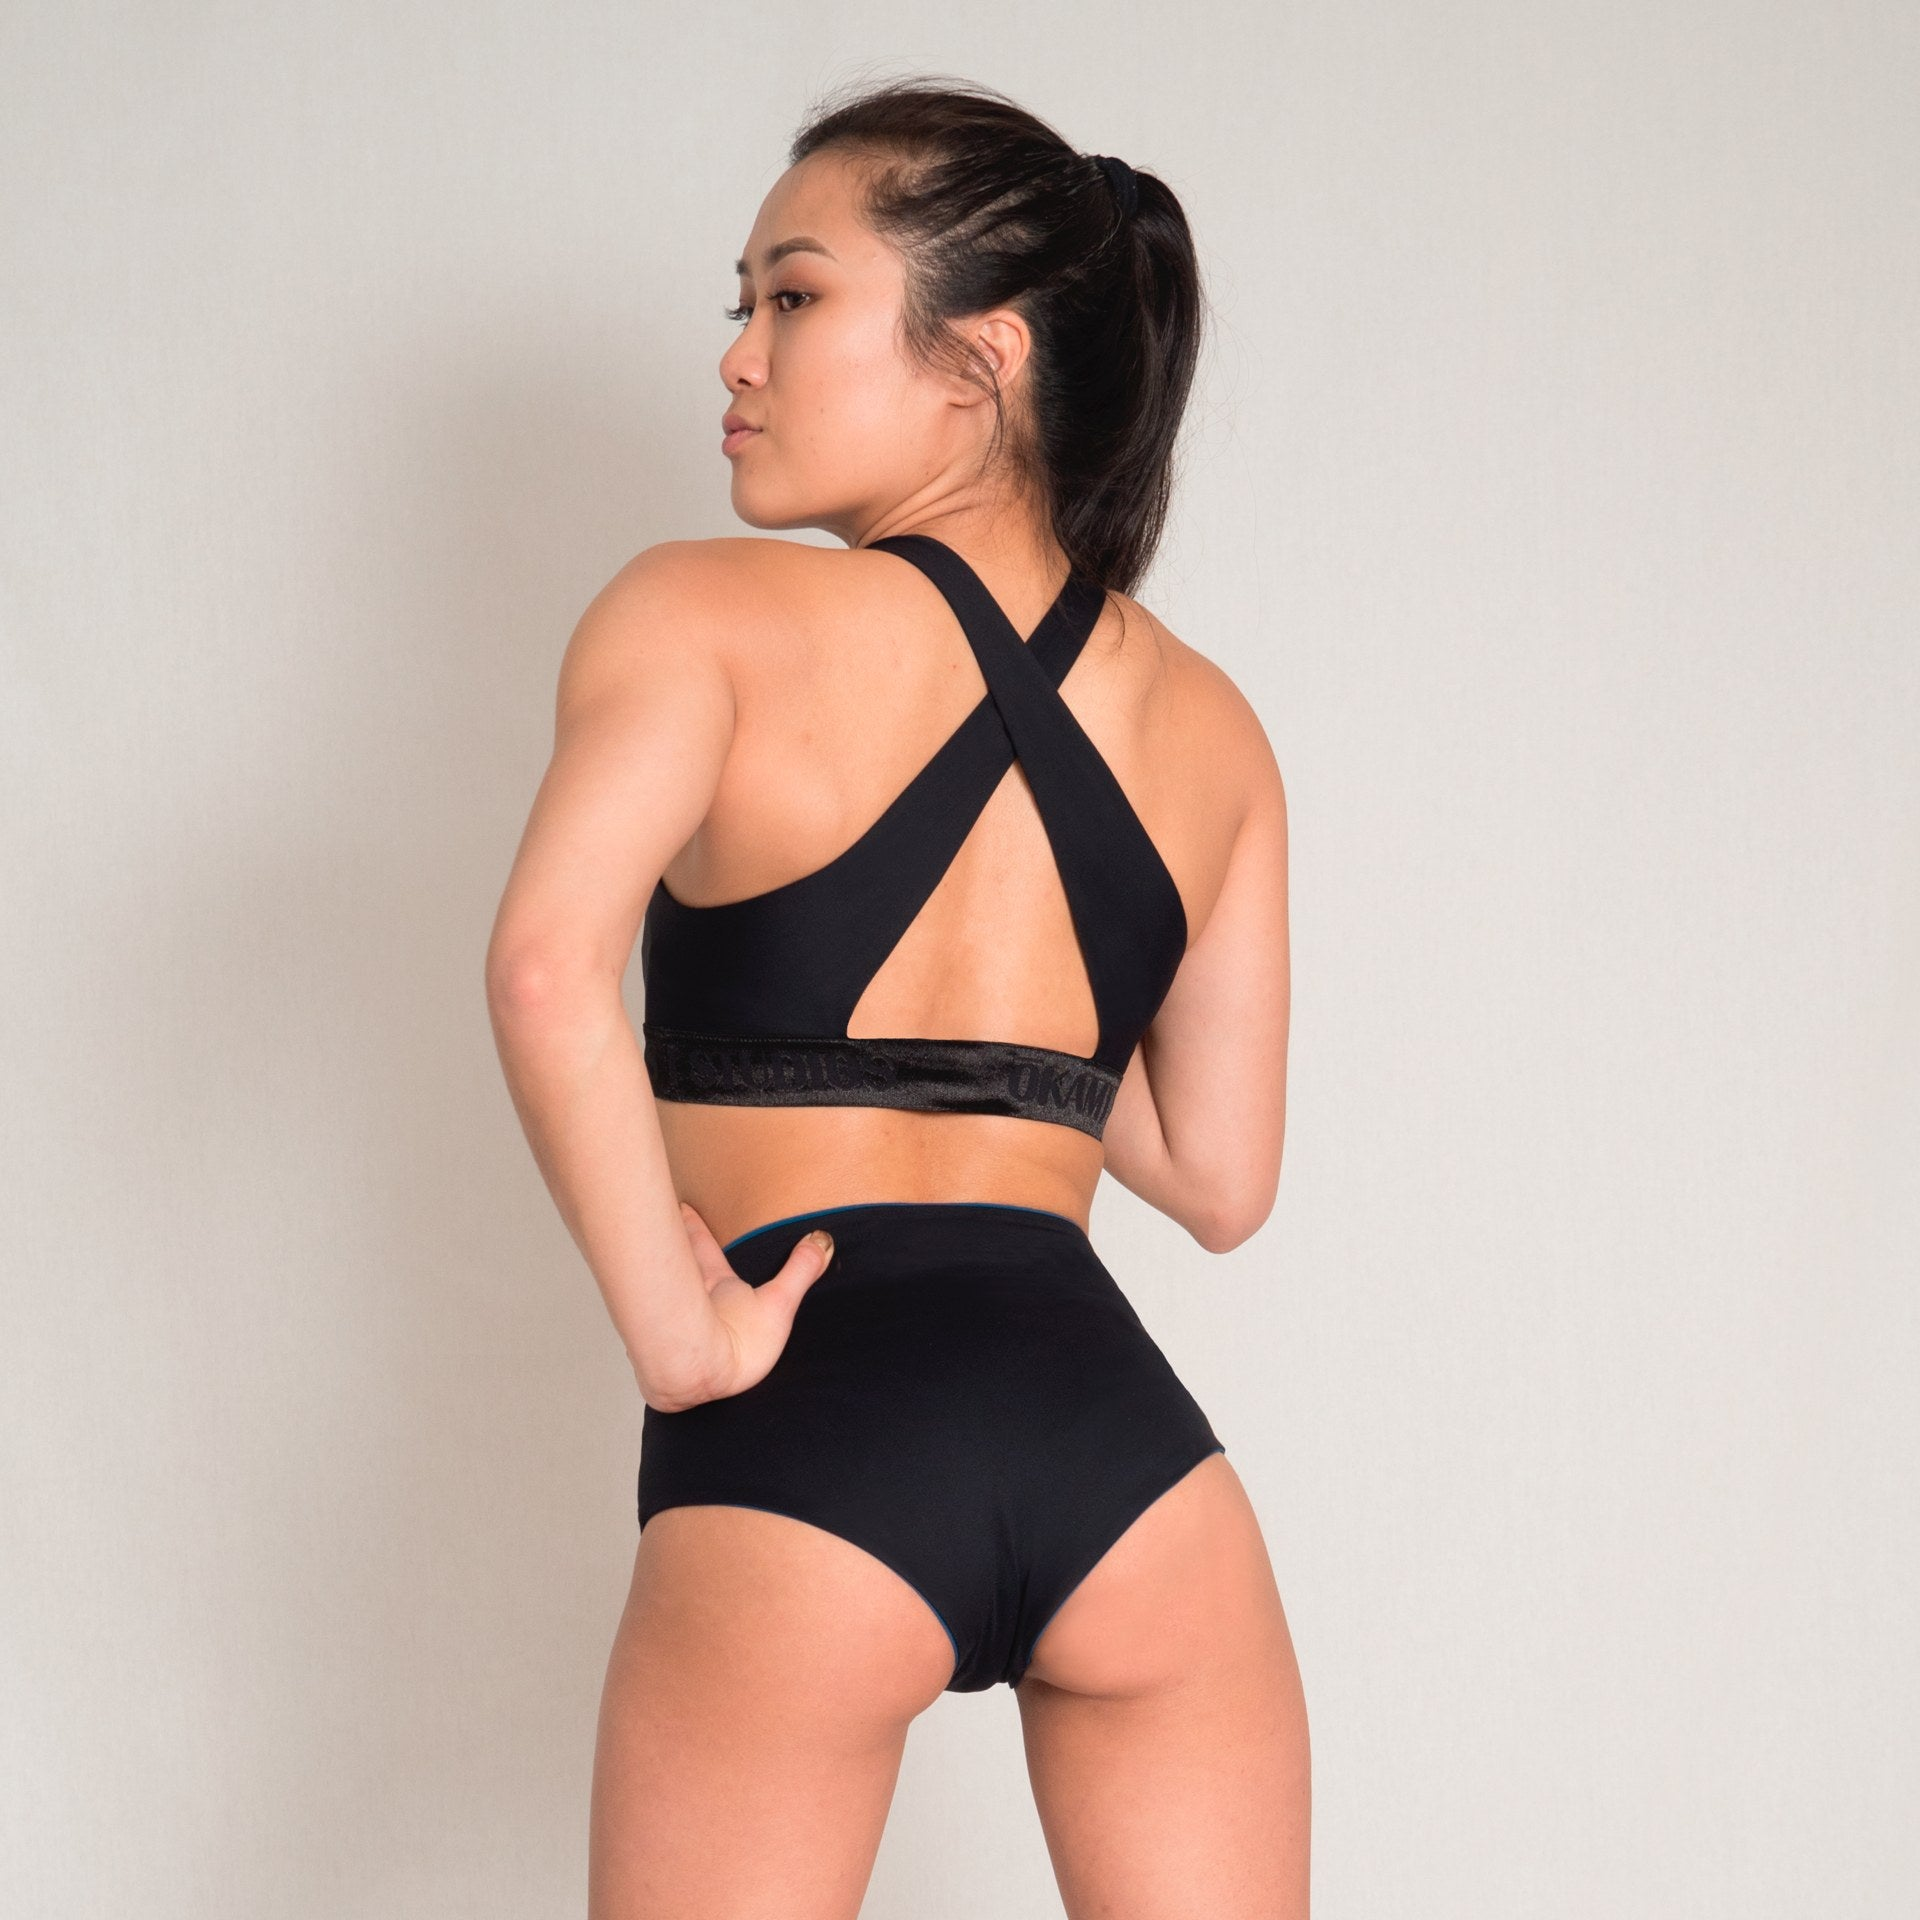 Premium activewear for aerial and pole dance